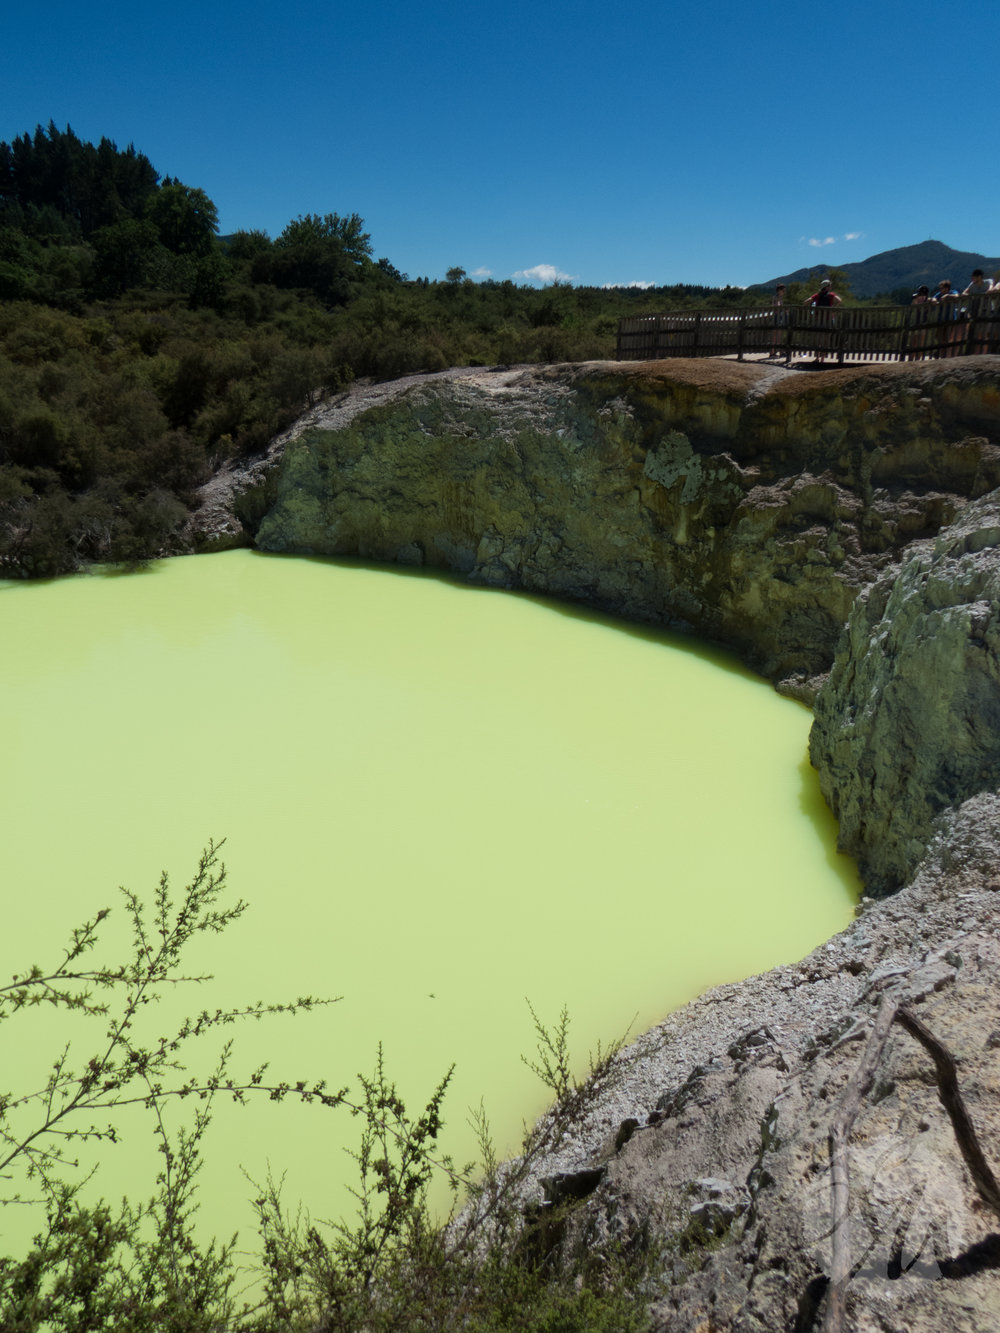 Aptly named the Devil's Bath, the color of this pool shifts from green to yellow and results from the mineral-rich water from the nearby Champagne Pool mixing with sulphuric and ferrous salts. I'd never seen anything like it.